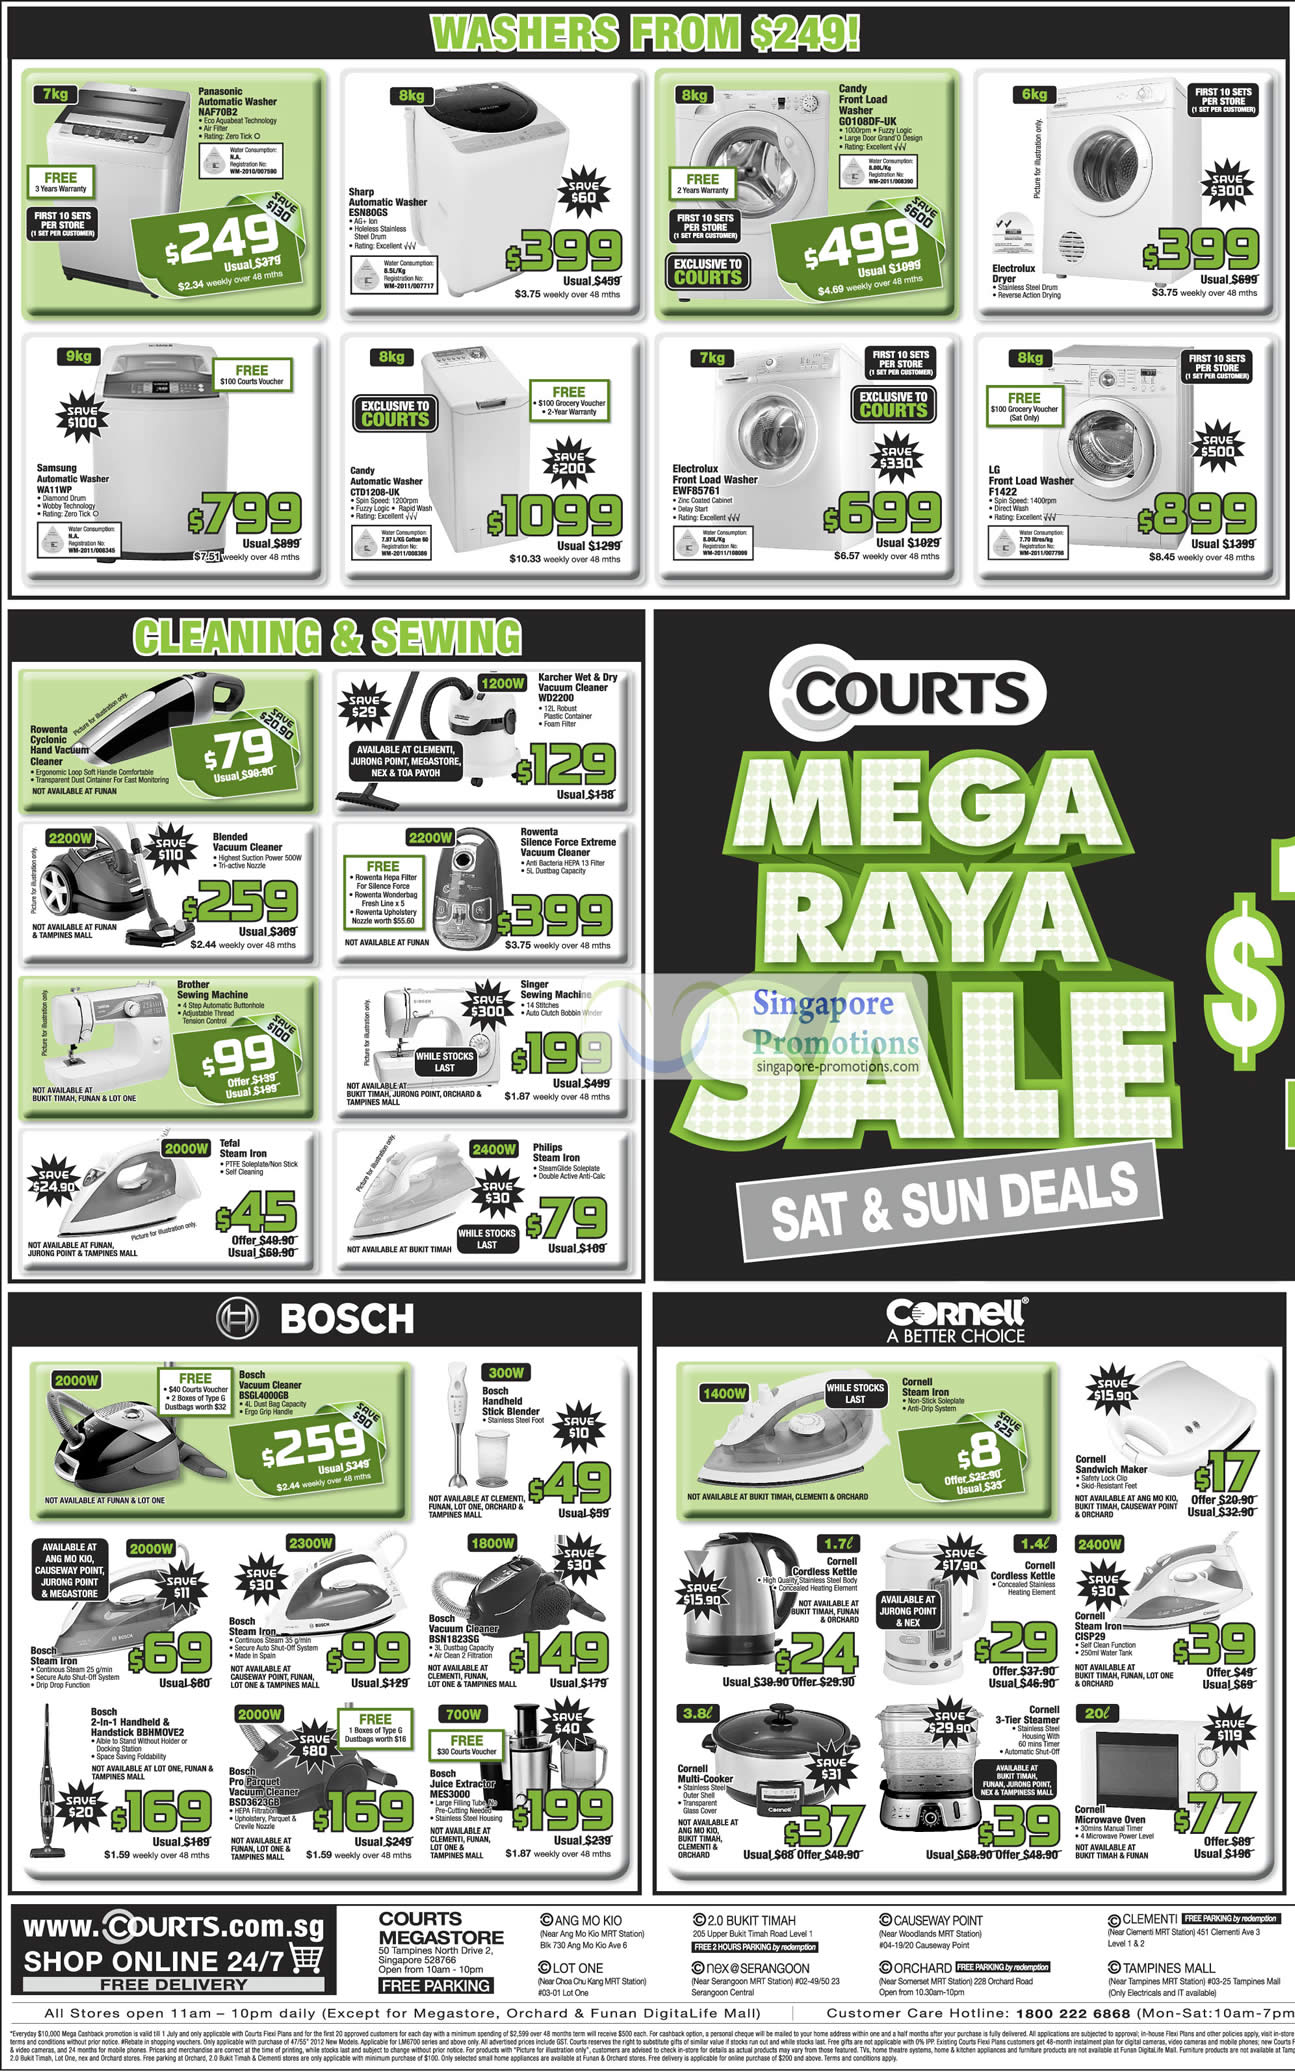 Washers, Steam Irons, Vacuum Cleaners, Bosch, Cornell, Philips, Tefal, Brother, Singer, Rowenta, Candy, Electrolux, LG, Sharp